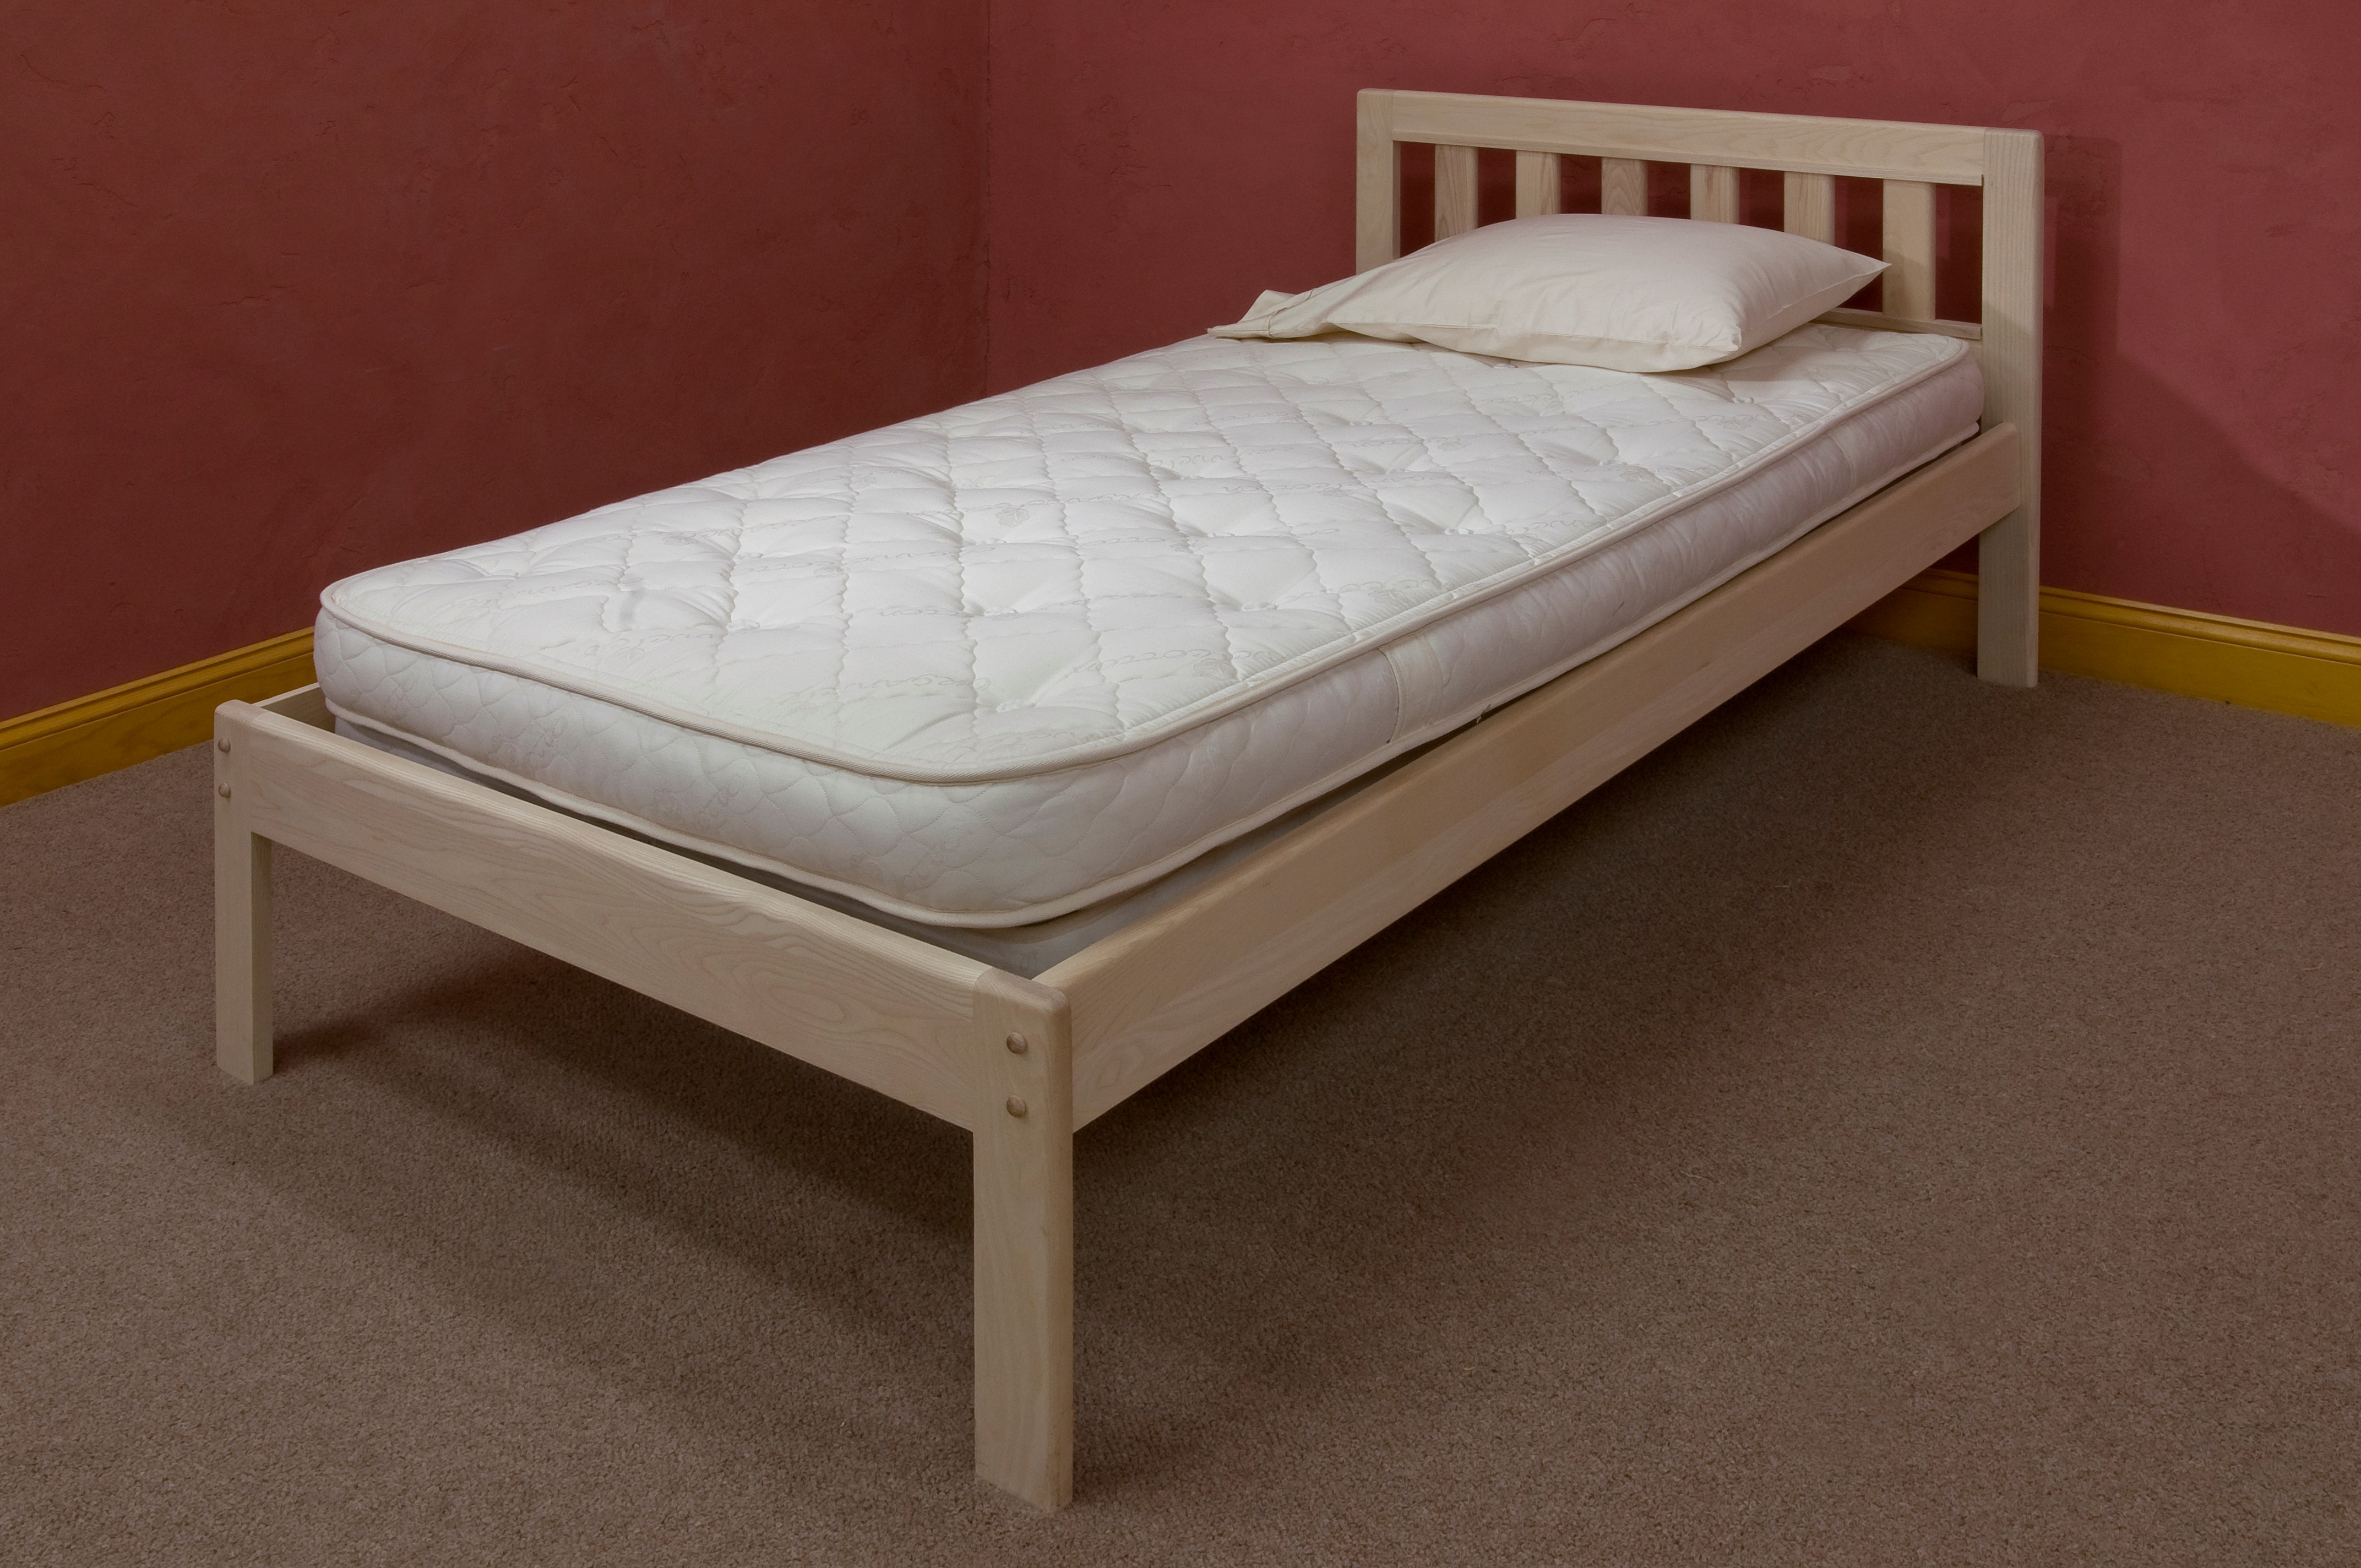 A Natural Latex Or Innerspring Mattress Your Small Child